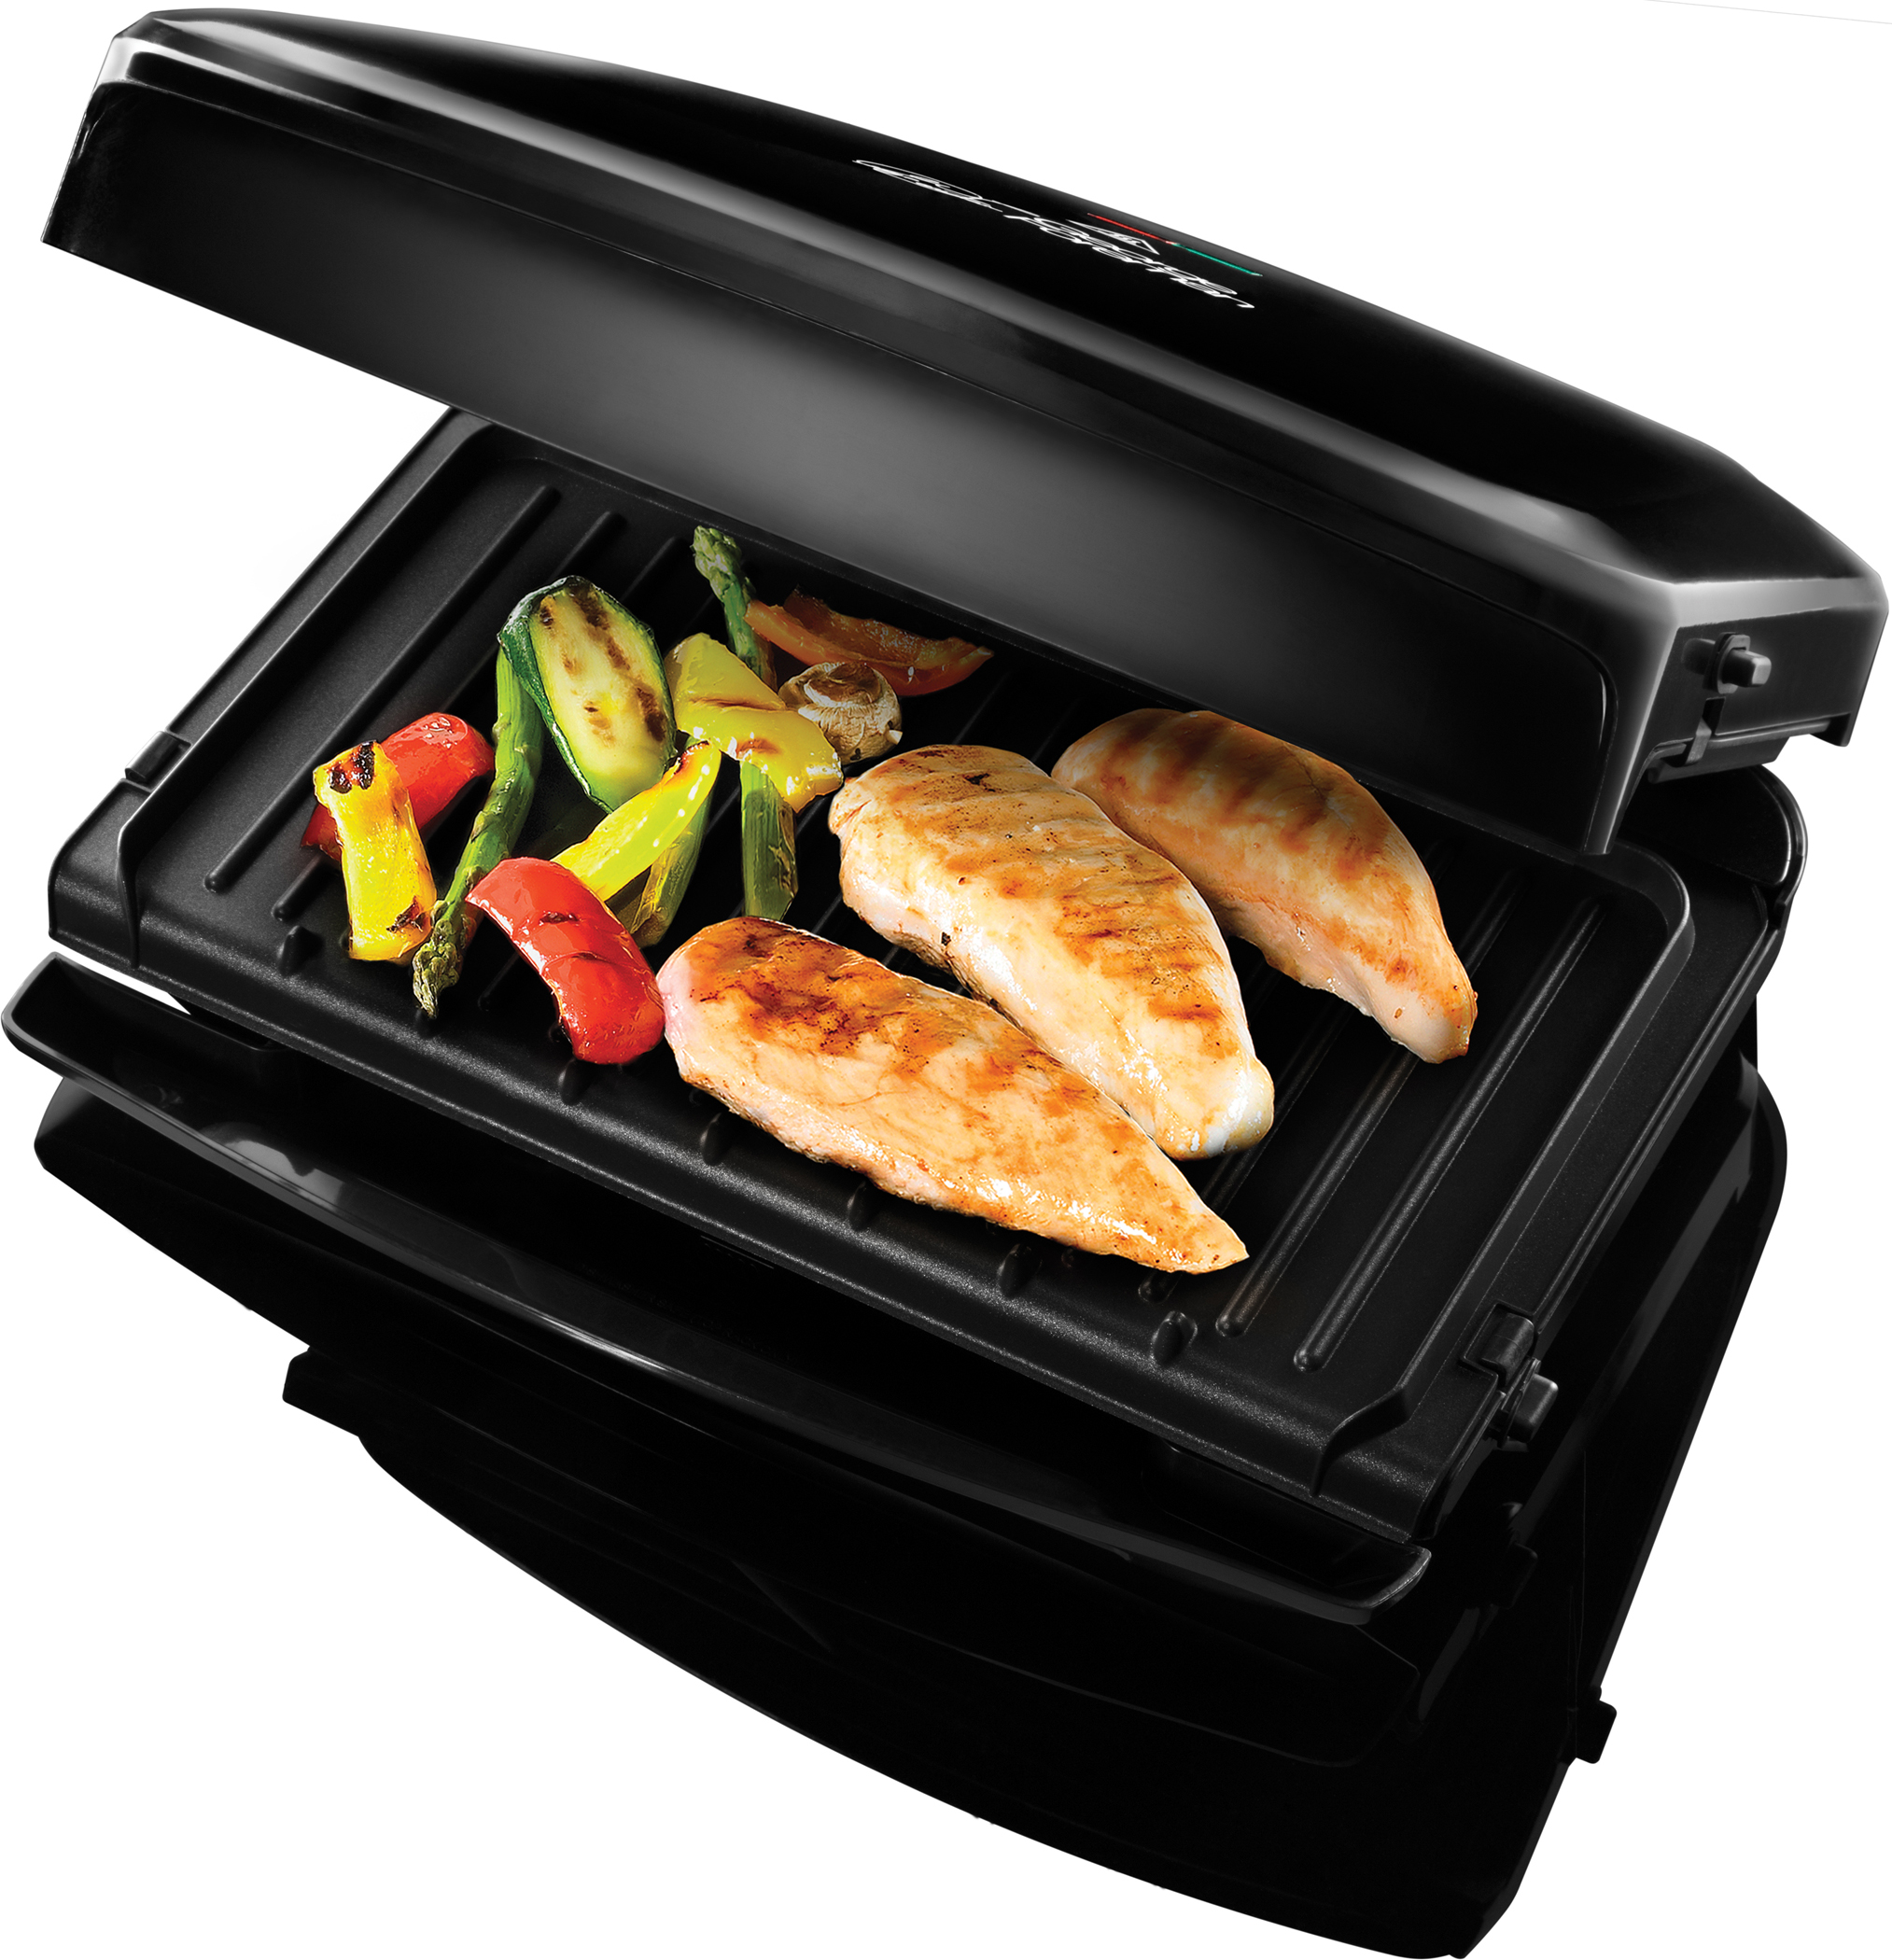 <h1>George Foremann Fitnessgrill Family</h1><h3 style='font-size: 20px; margin: 0px 0px 15px 0px;'> - Perfect Fit-Fettauffangschale, 32,5 cm x 18 cm Grillfläche</h3>